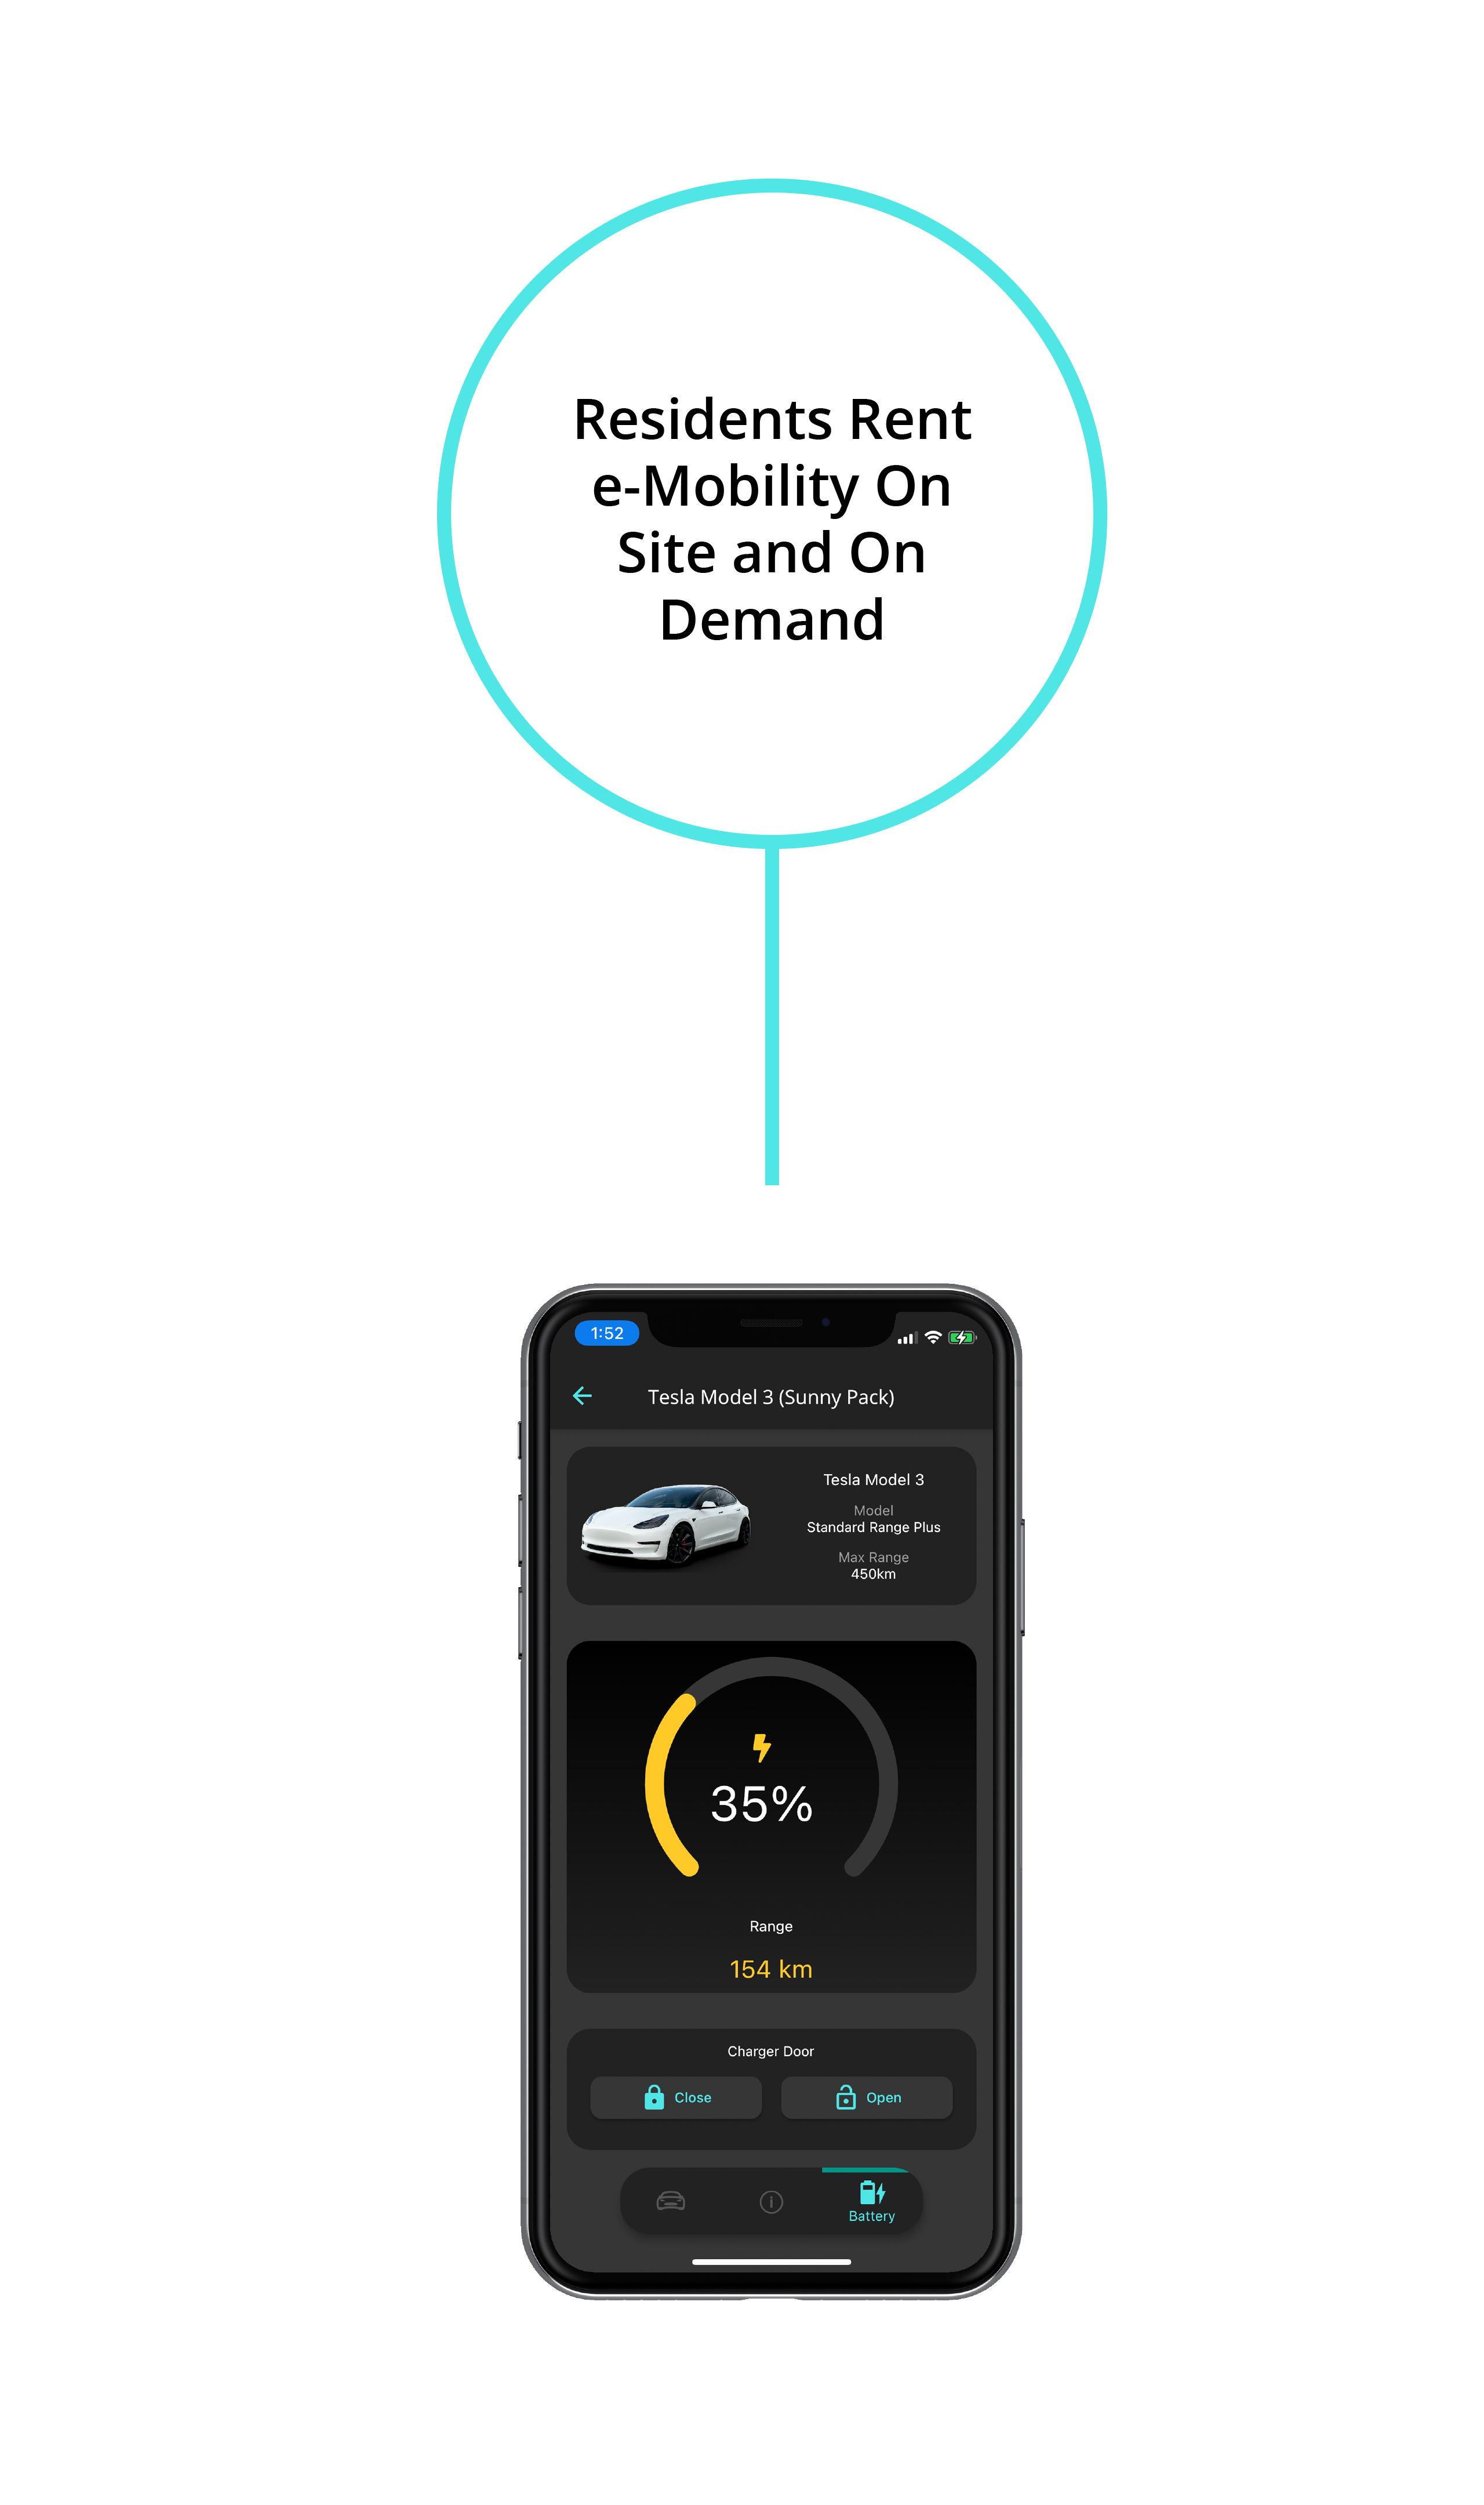 Residents Rent e-Mobility On Site and On Demand above Phone App Showing Tesla Model 3 and Charge Range